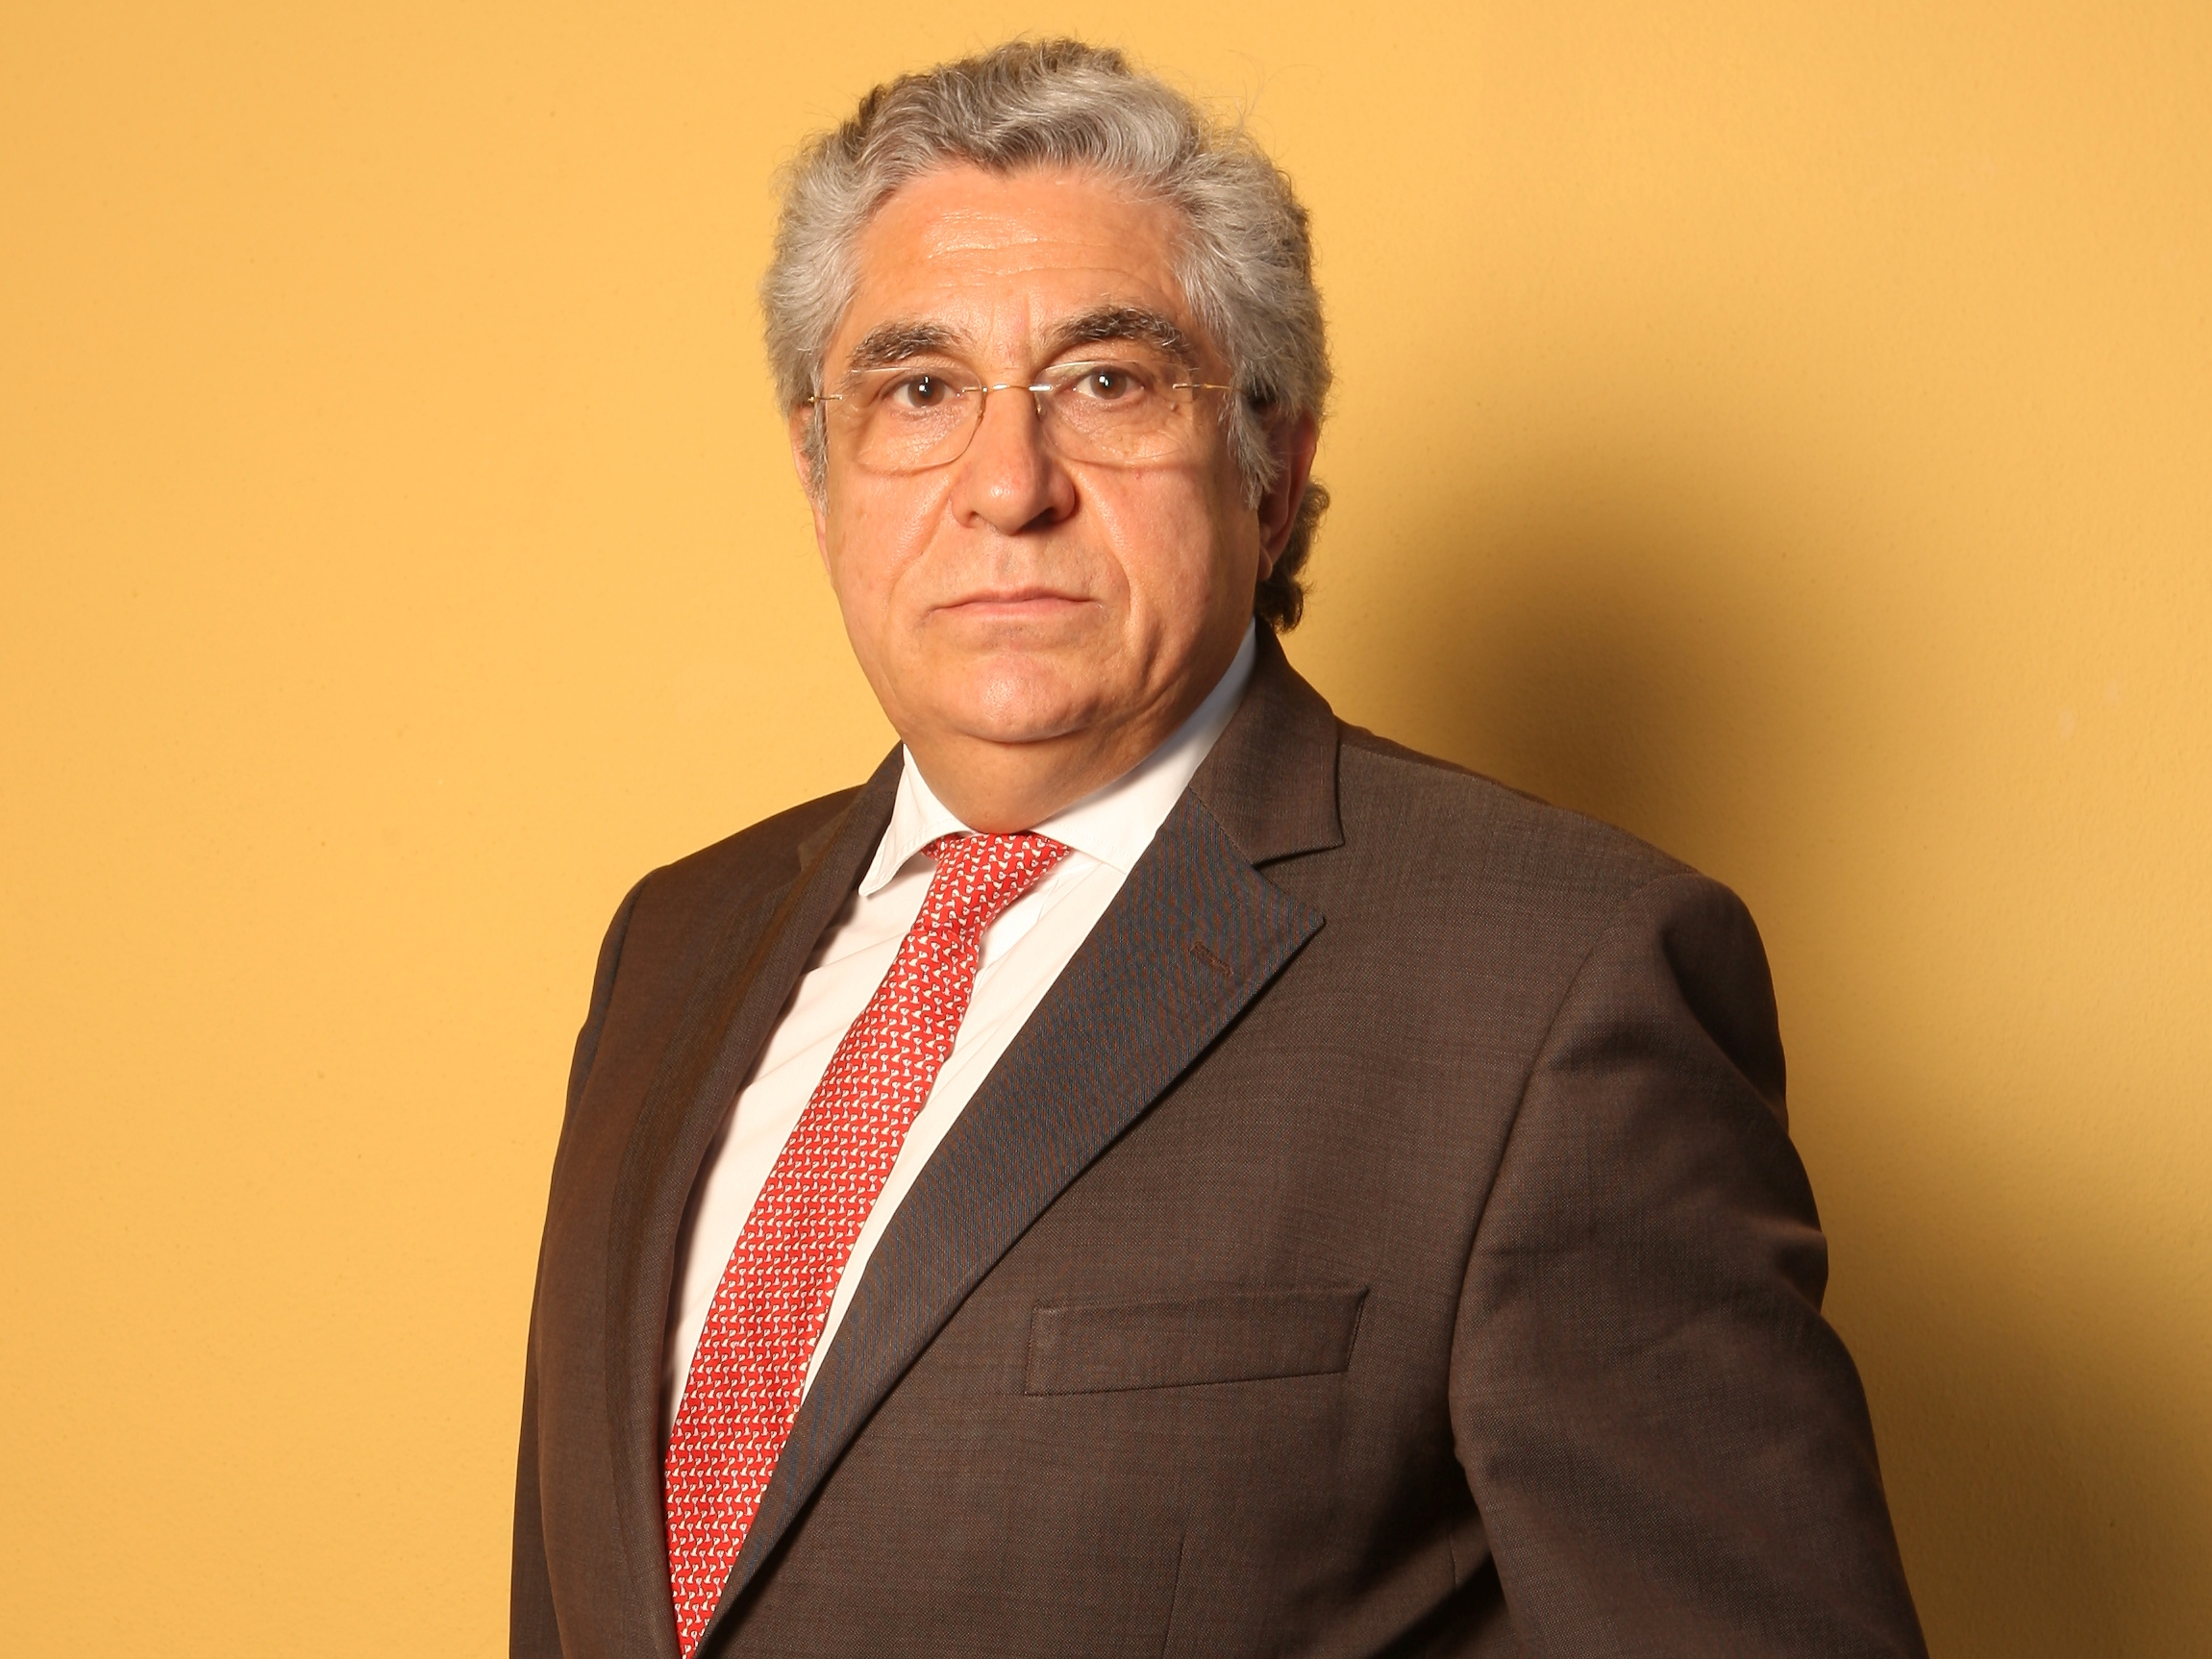 José Poças Esteves